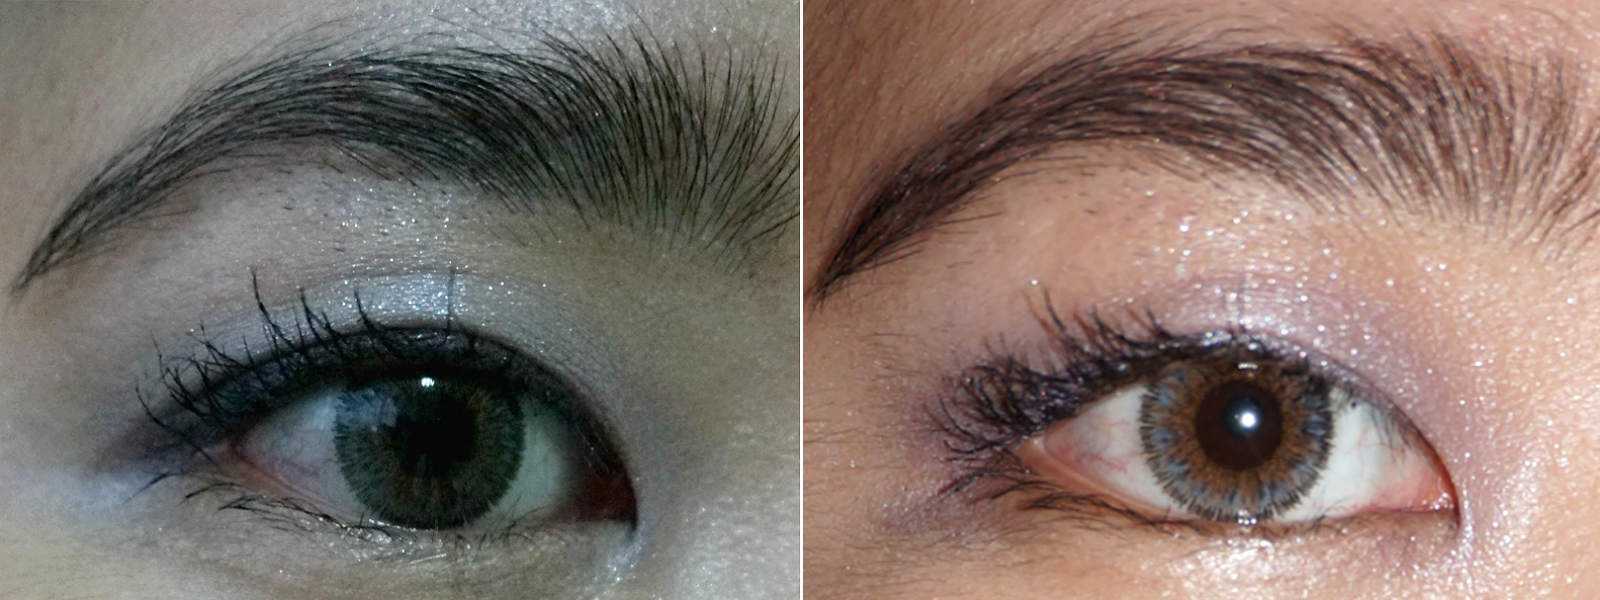 Shiseido Shimmering Cream Eye Color in Lavande (L) No Flash, (R) With Flash